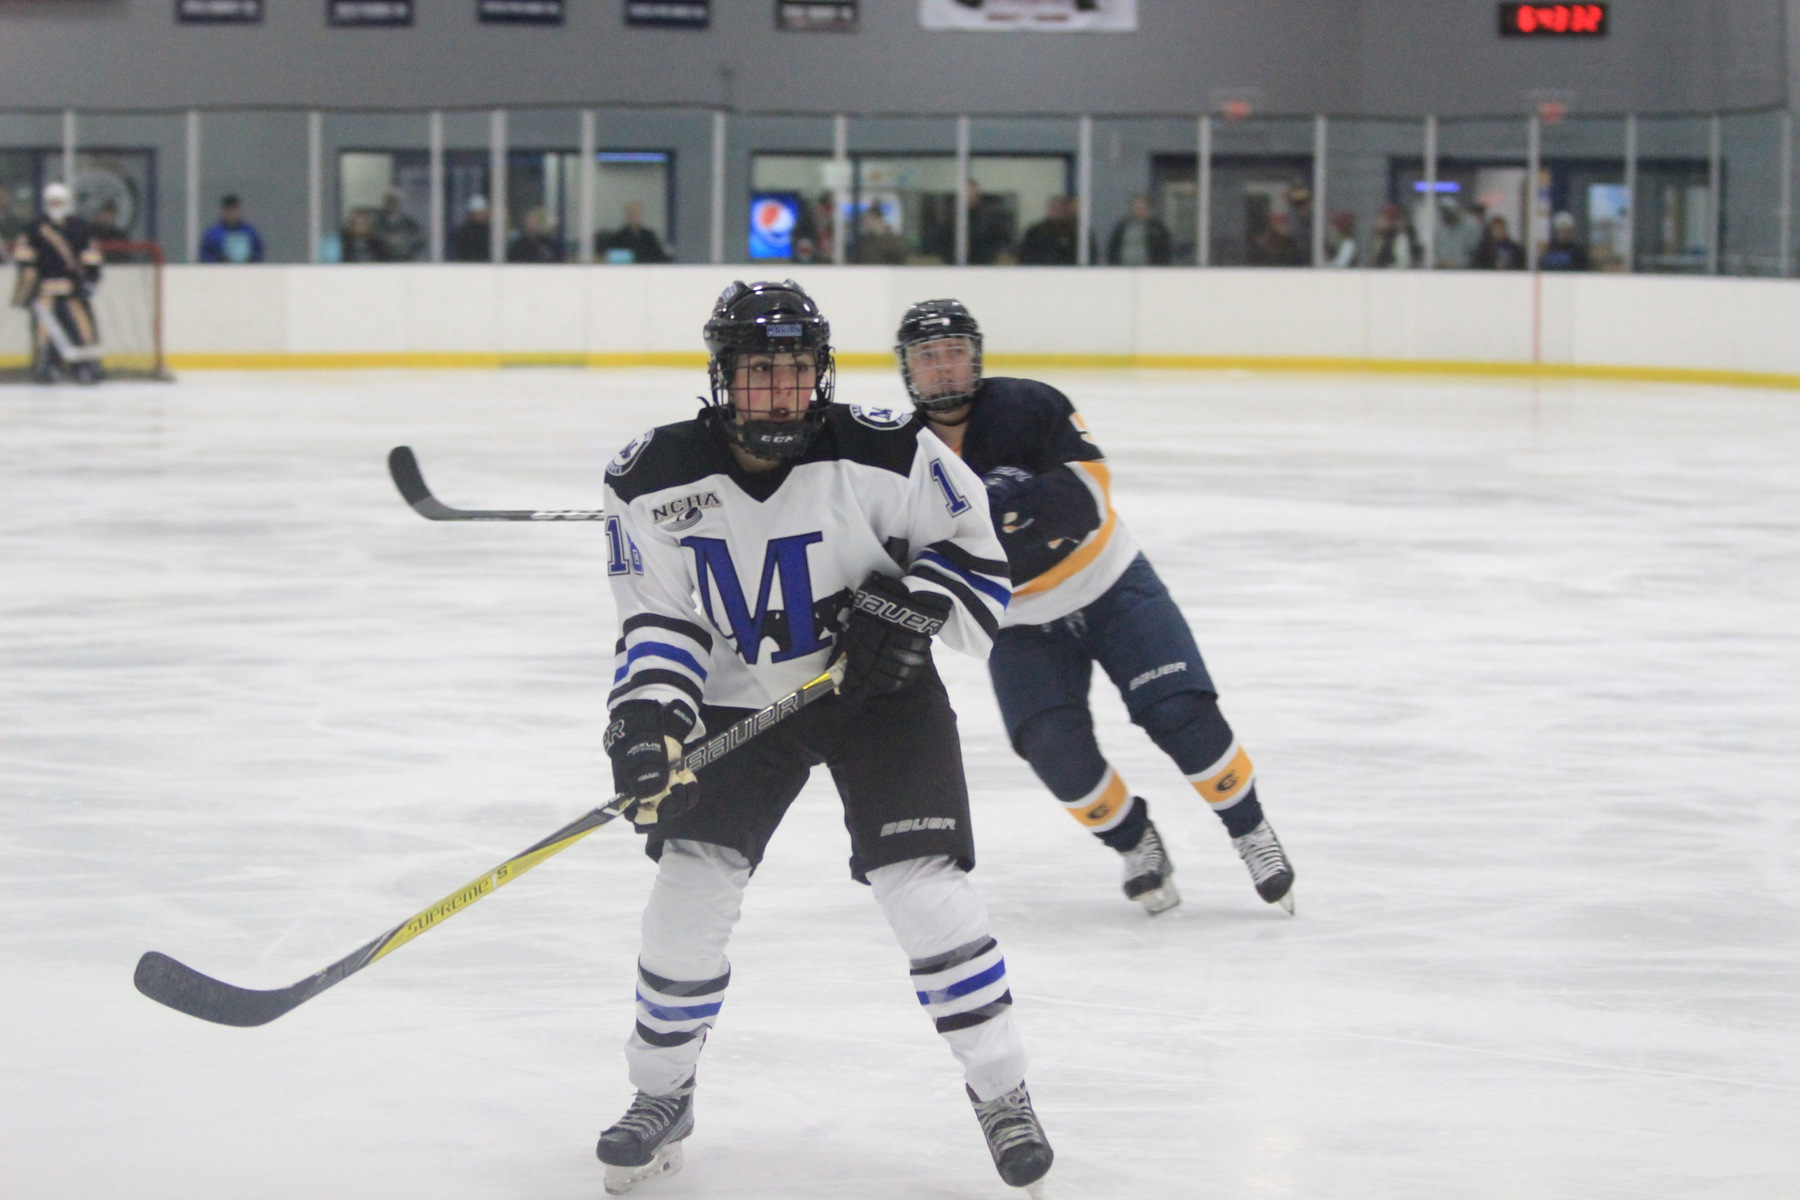 Marian tries to gain the puck.